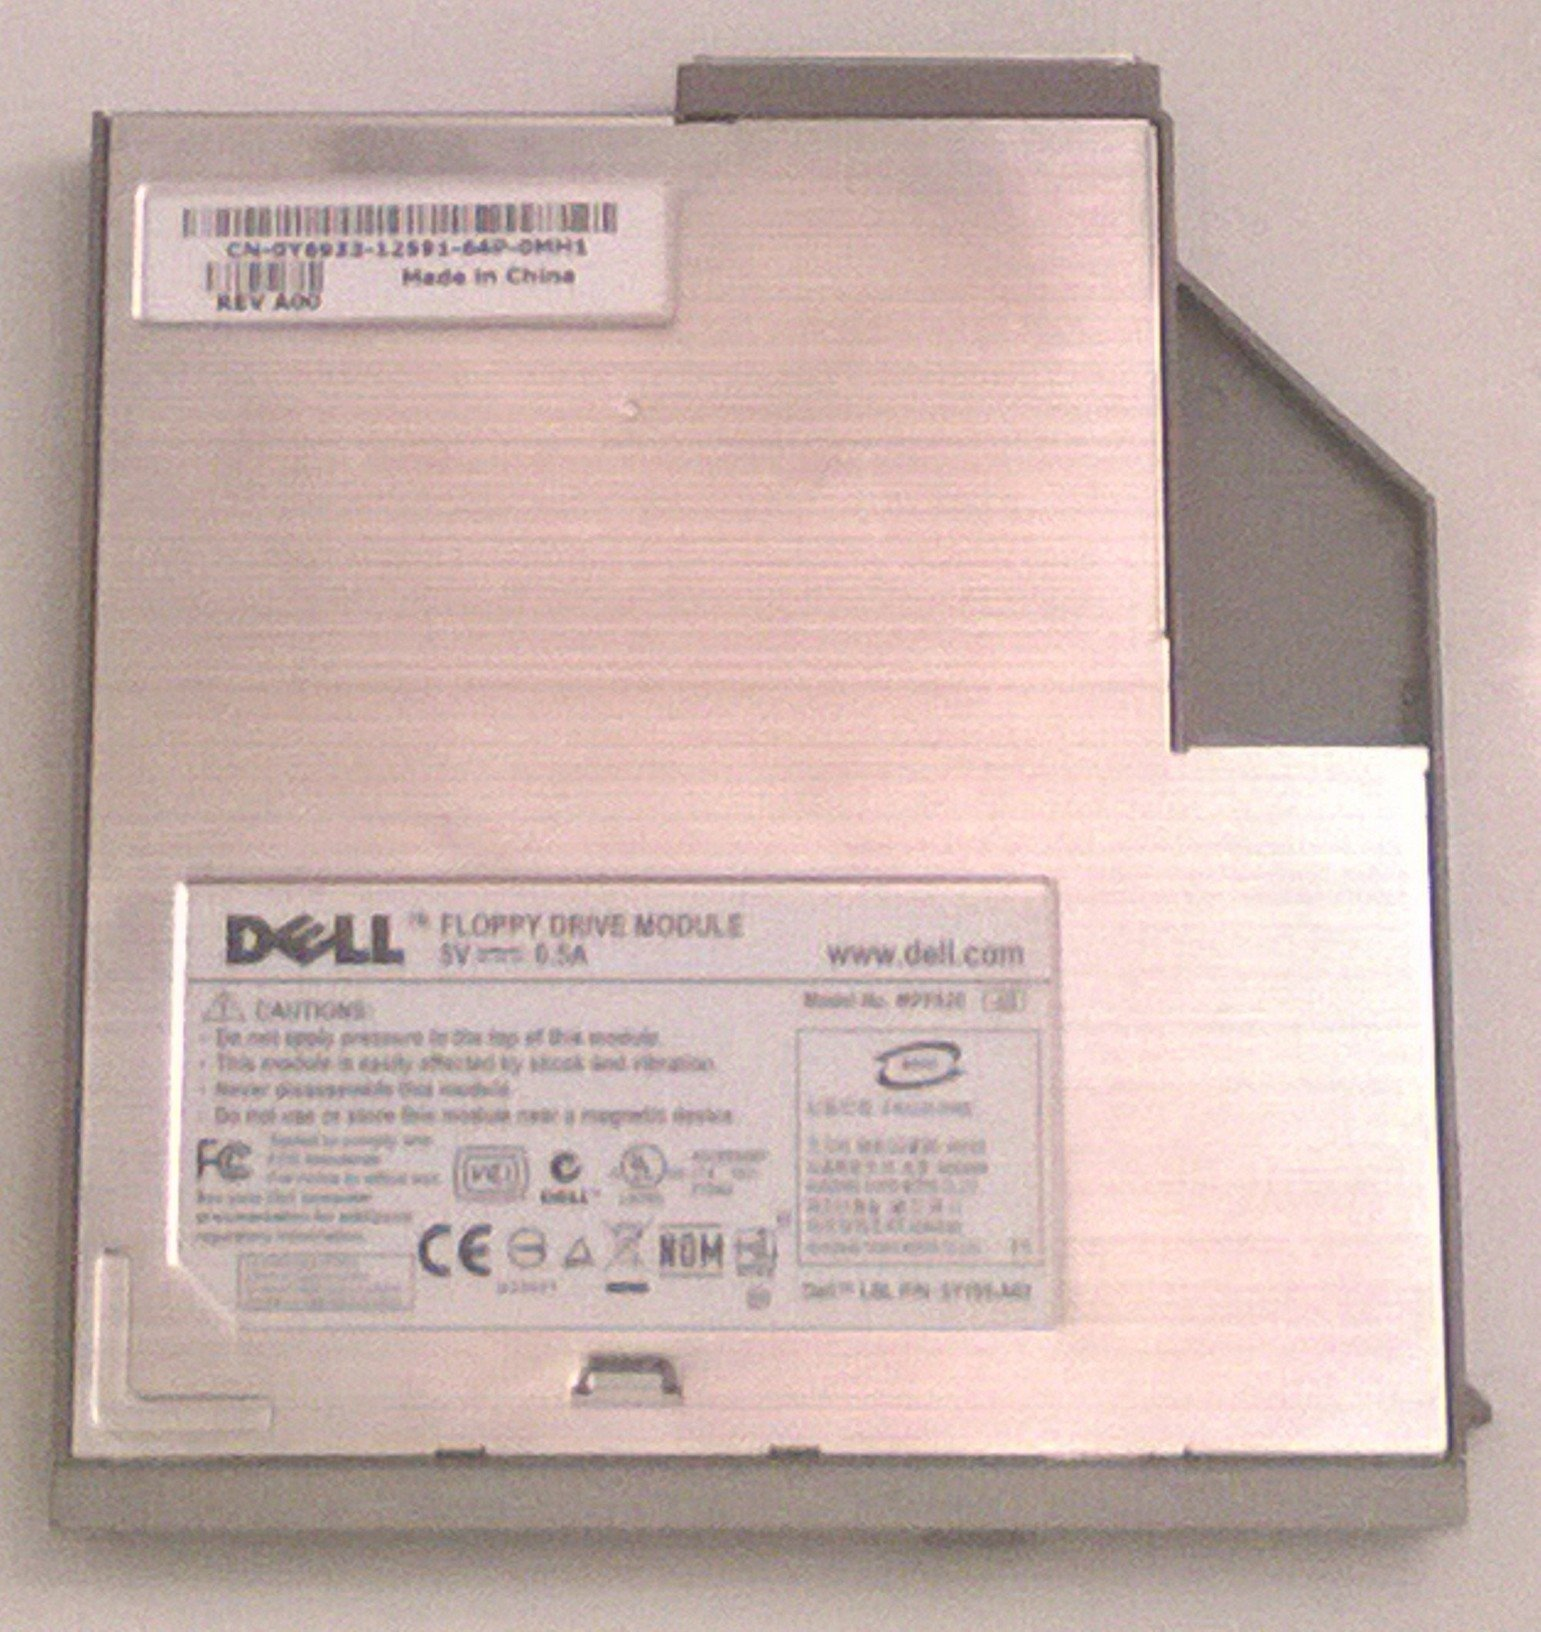 Dell Y6933 Inspiron Latitude Laptop Floppy Drive, 6Y185-A02